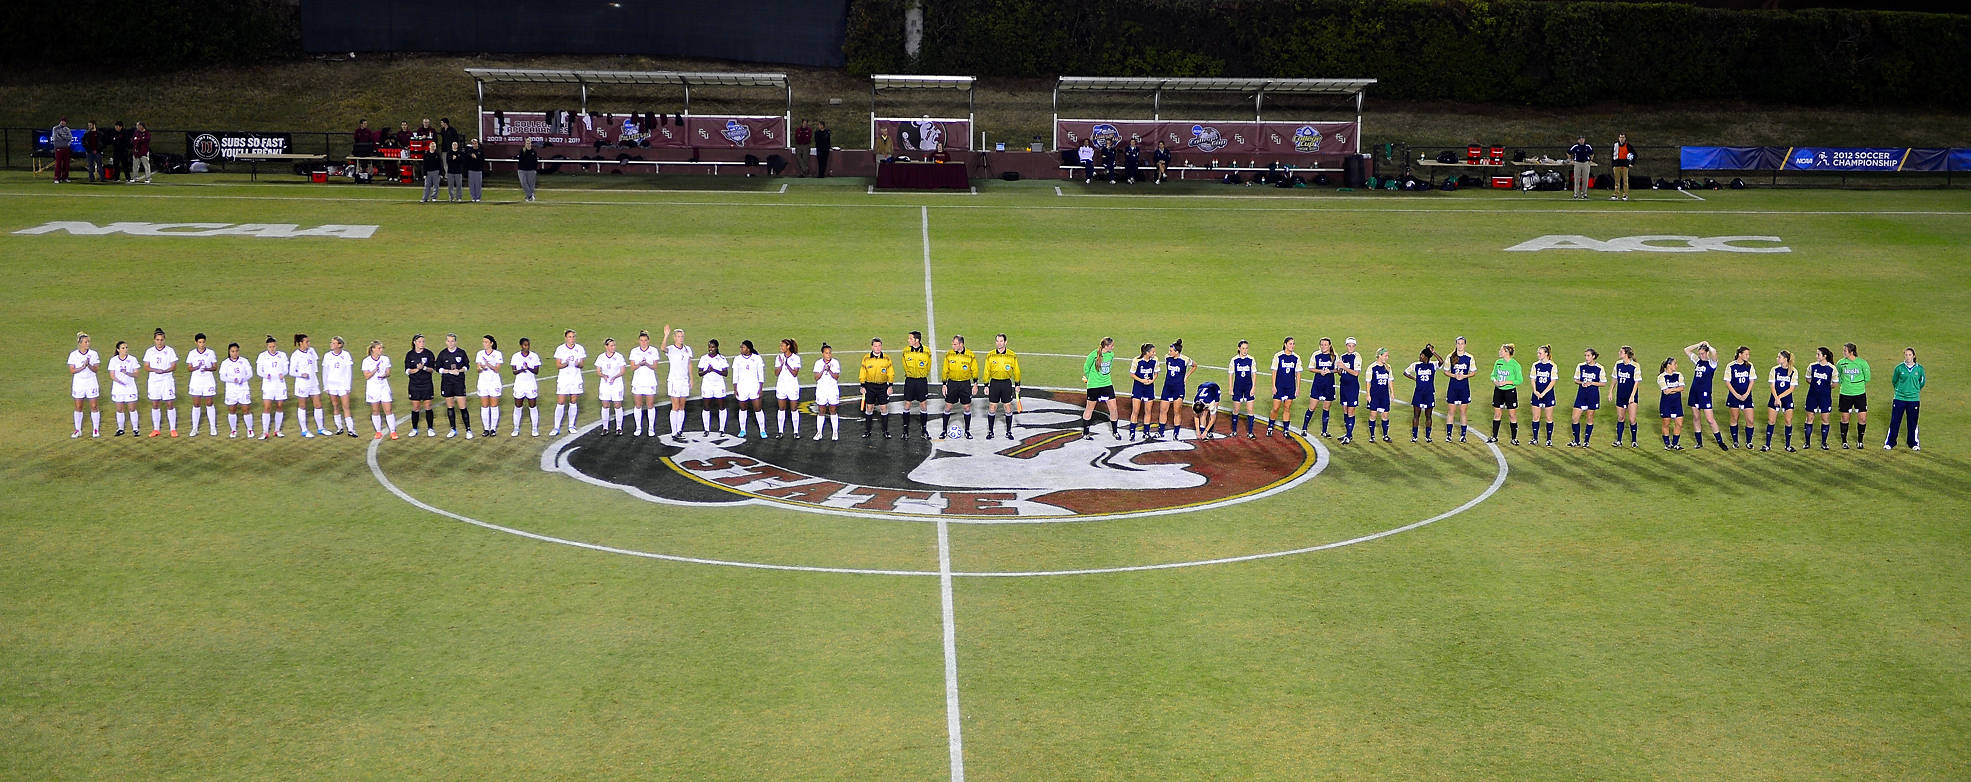 Florida State and Notre Dame introduced at the beginning of the game Friday night in the NCAA Tournament quarterfinals.